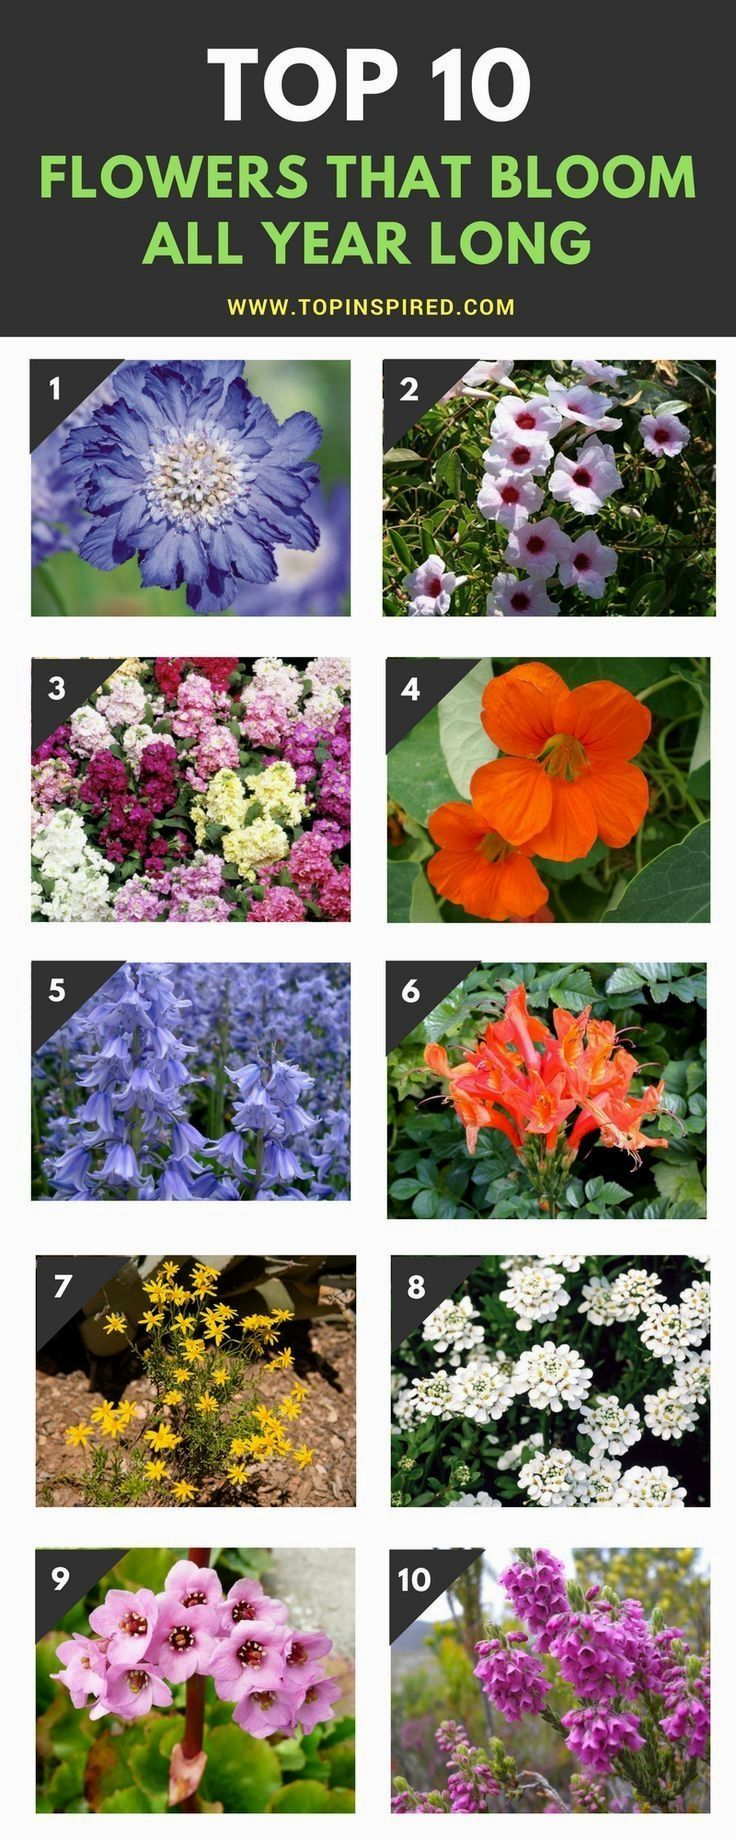 Top 10 Wonderful Flowers That Bloom All Year Long Plants And Gardens